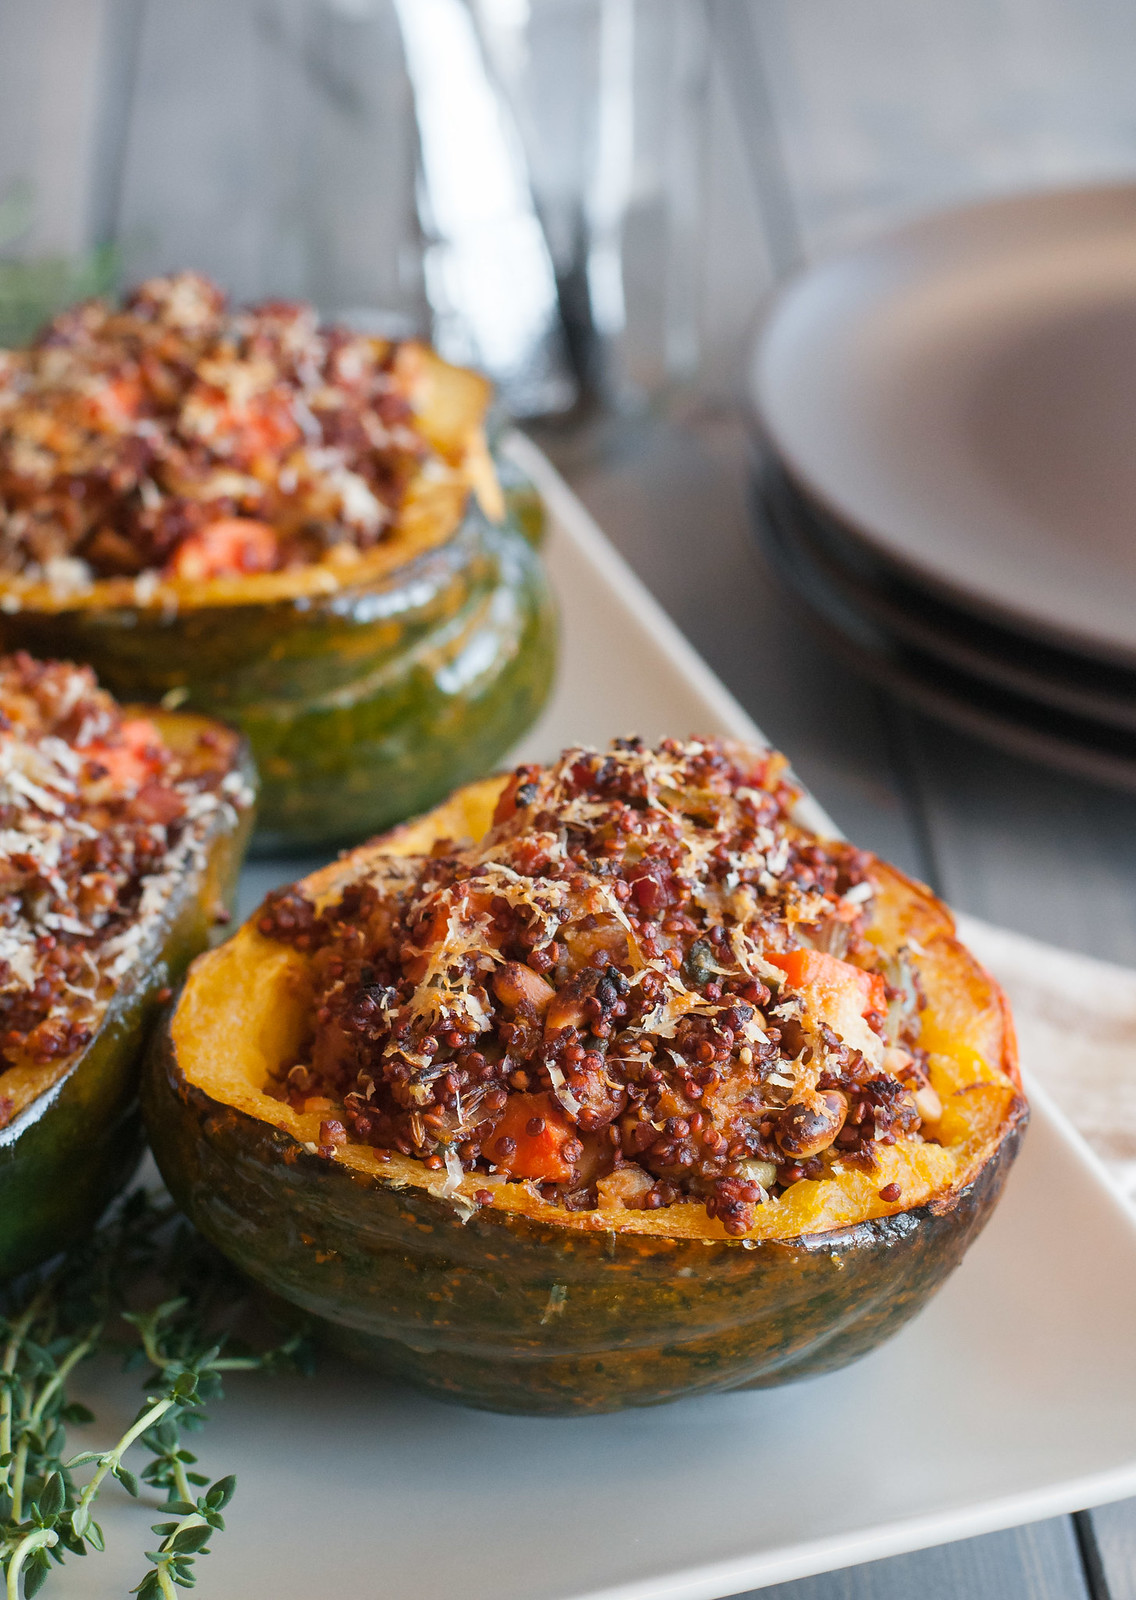 Rustic quinoa stuffed acorn squash - for almost any special diet | #homemade #healthy #comfortfood